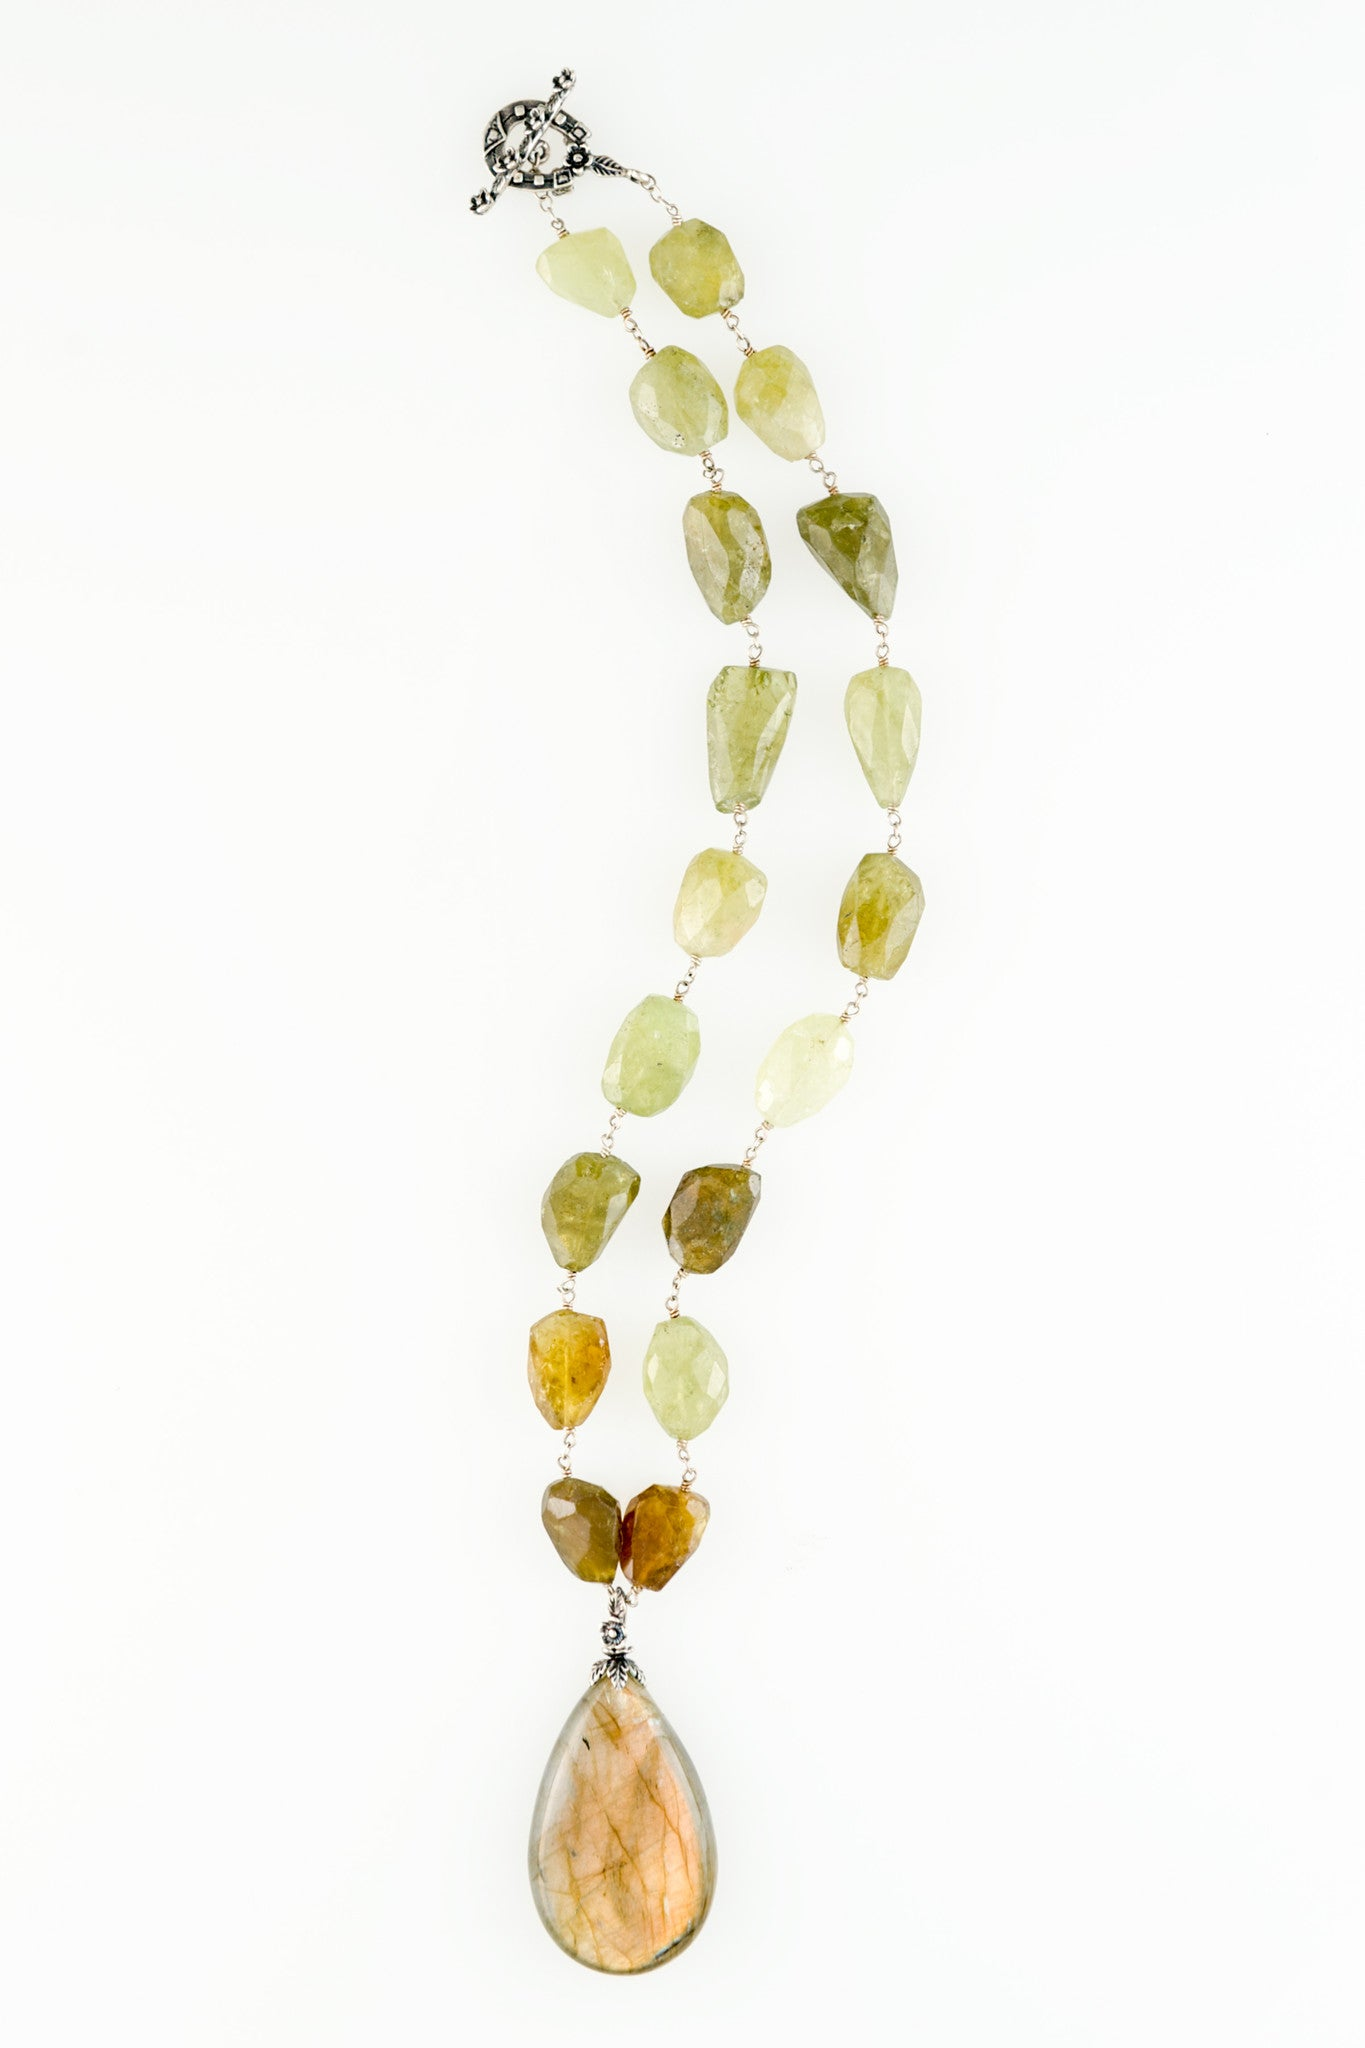 Labradorite Tier Drop Pendant One of a kind Necklace by Sage - The Sage Lifestyle